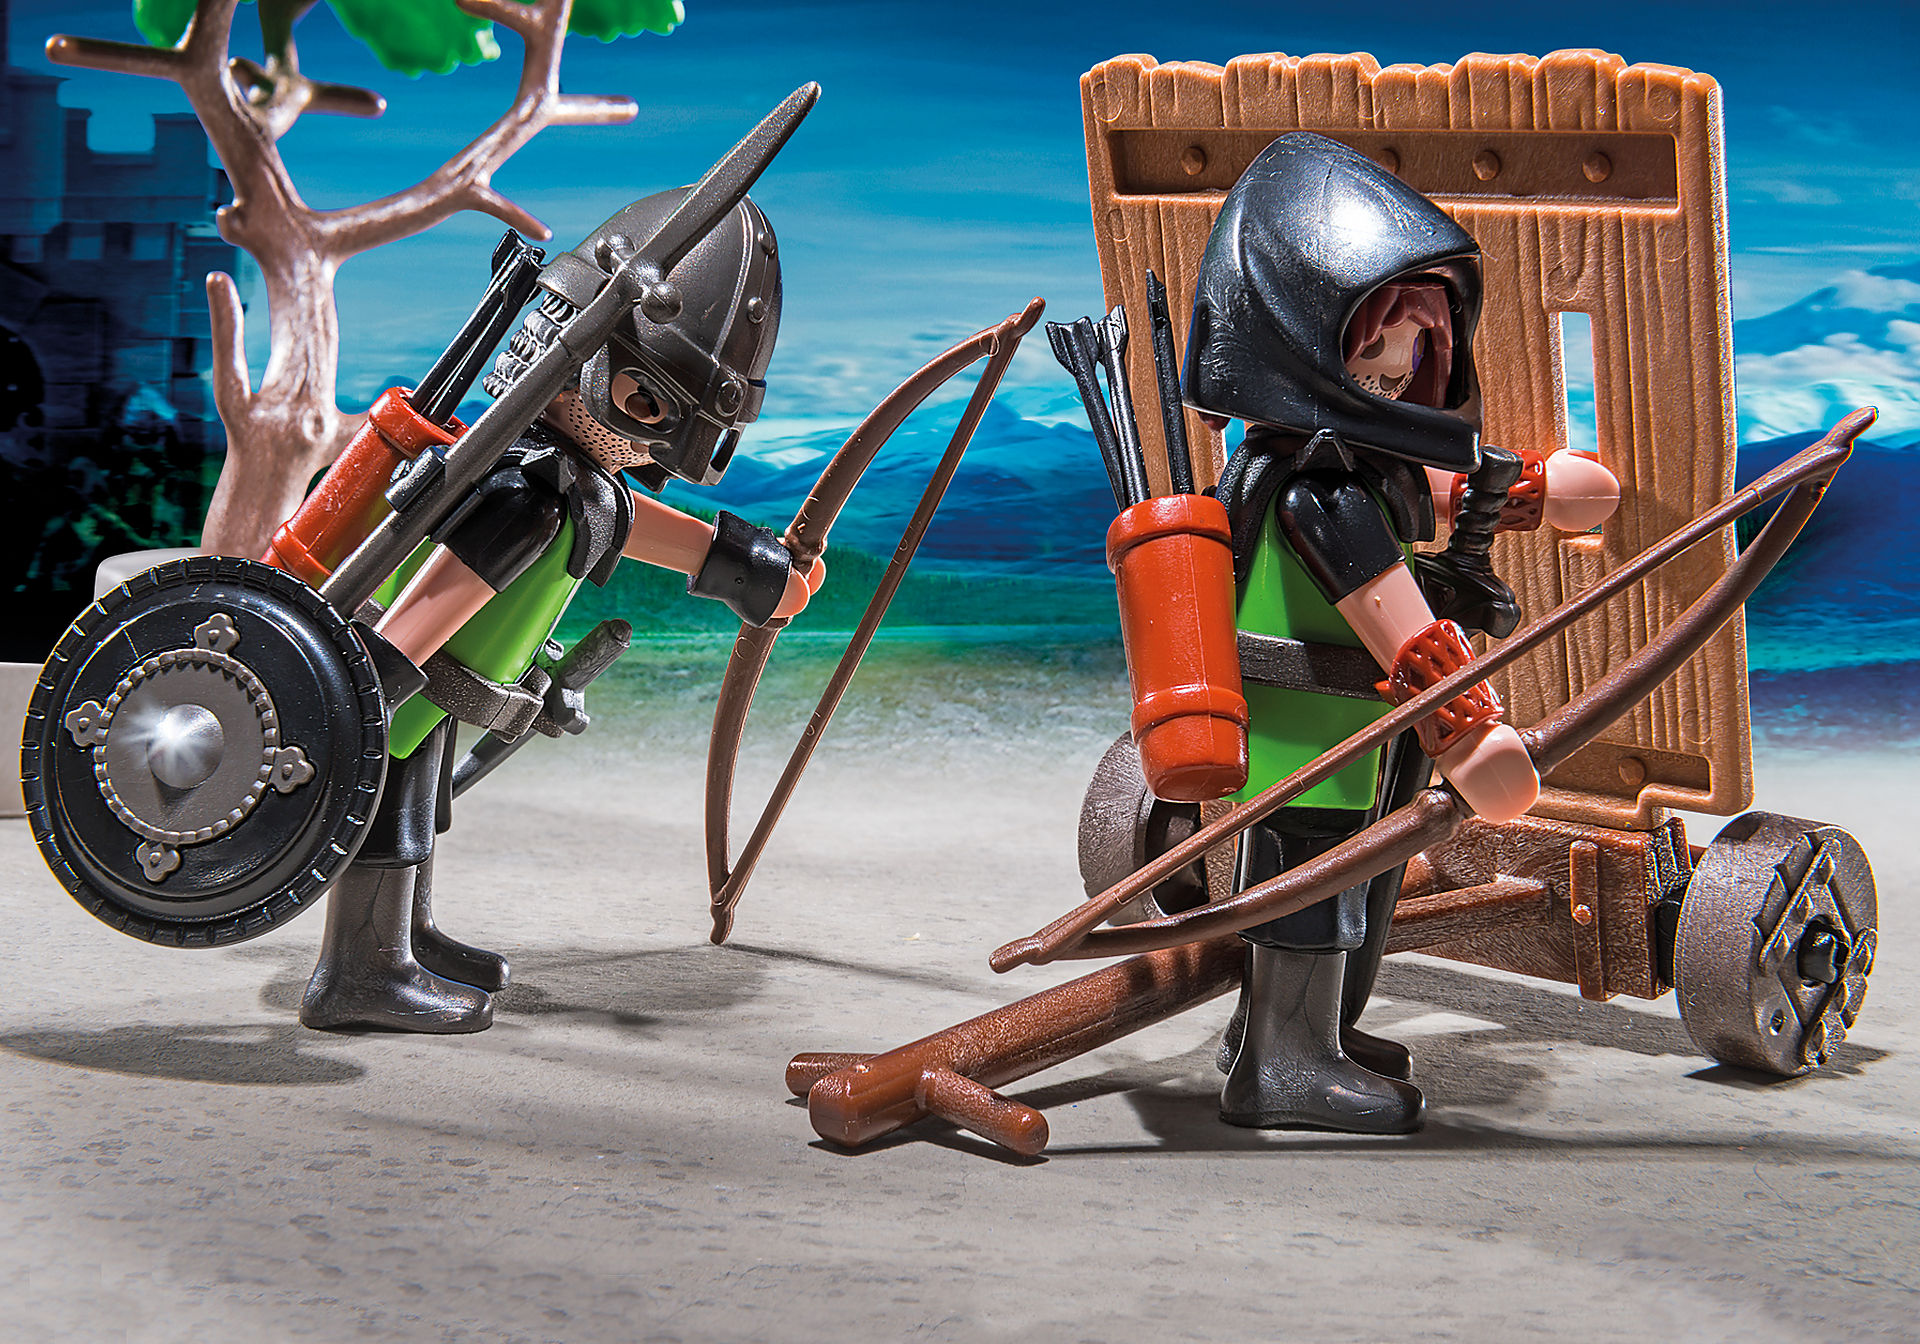 http://media.playmobil.com/i/playmobil/6041_product_extra1/Wolf Knights with Catapult